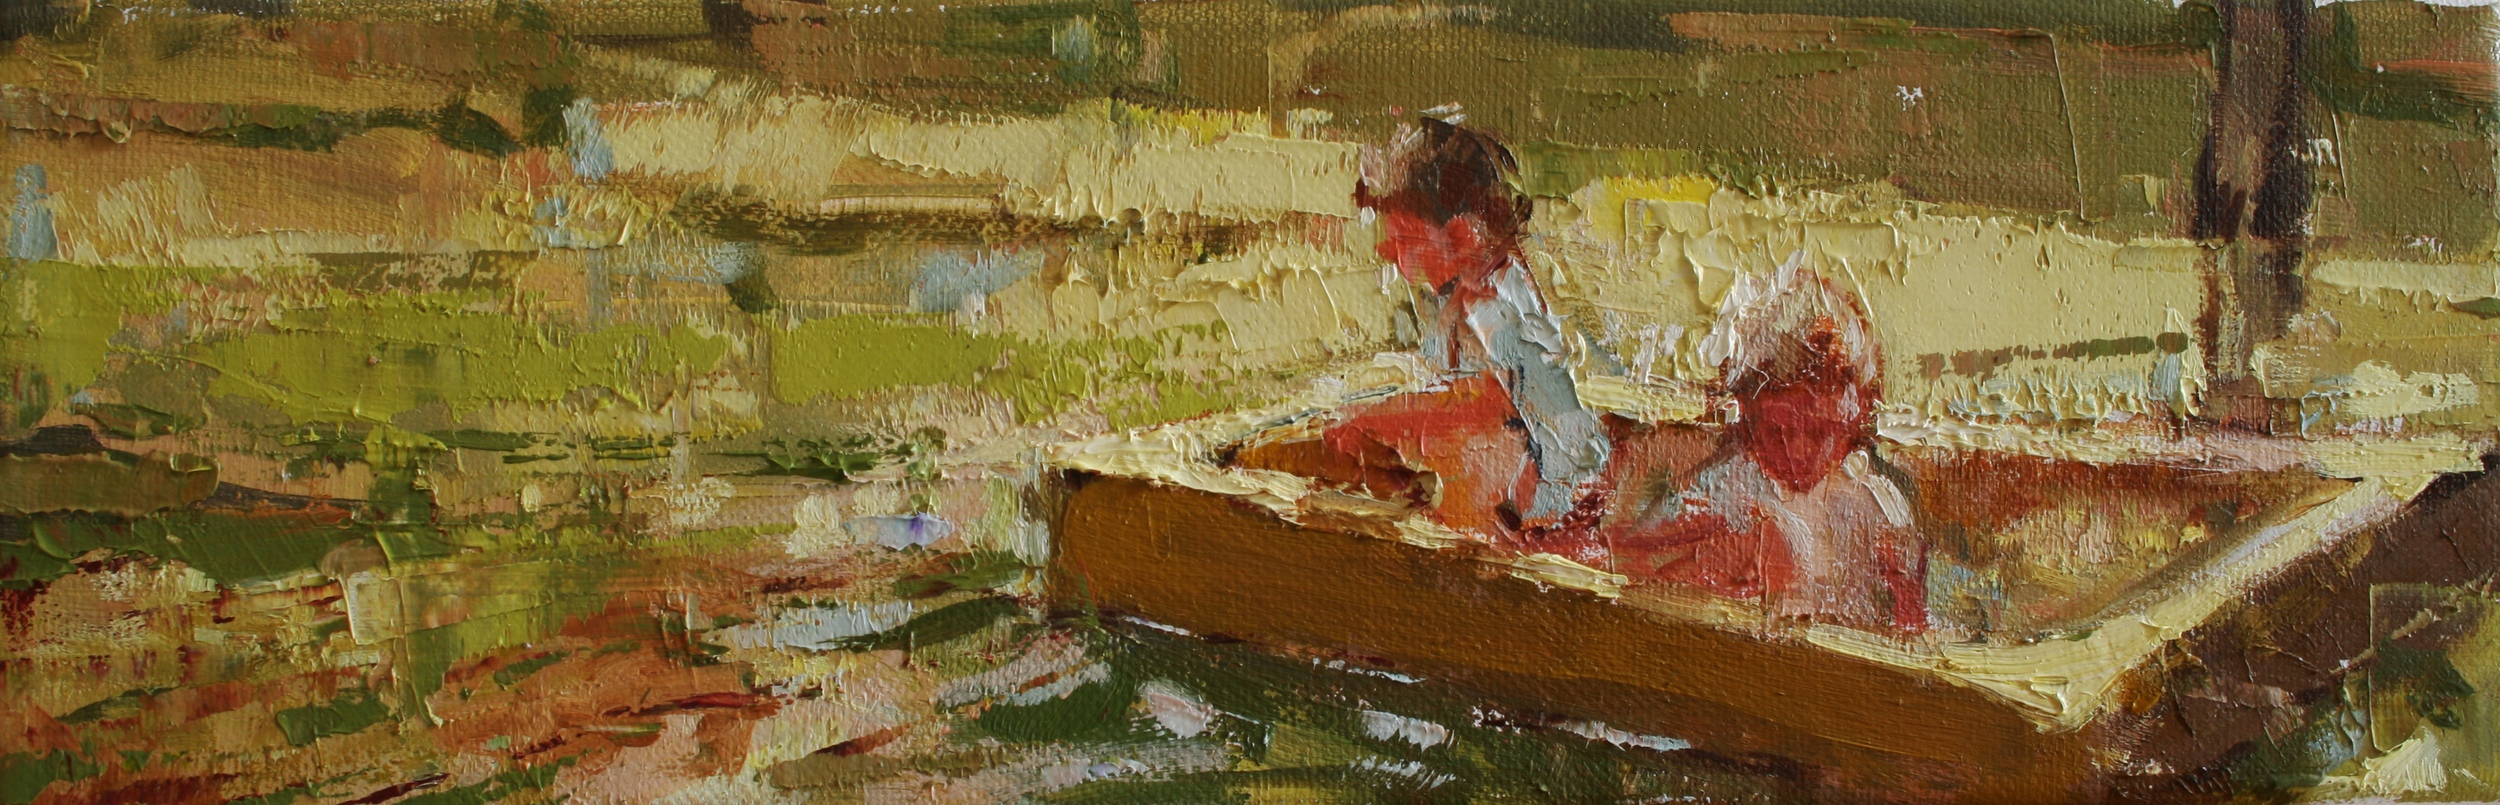 """Sandbox, oil on canvas, 4"""" x 12"""", 2011, Private Collection"""